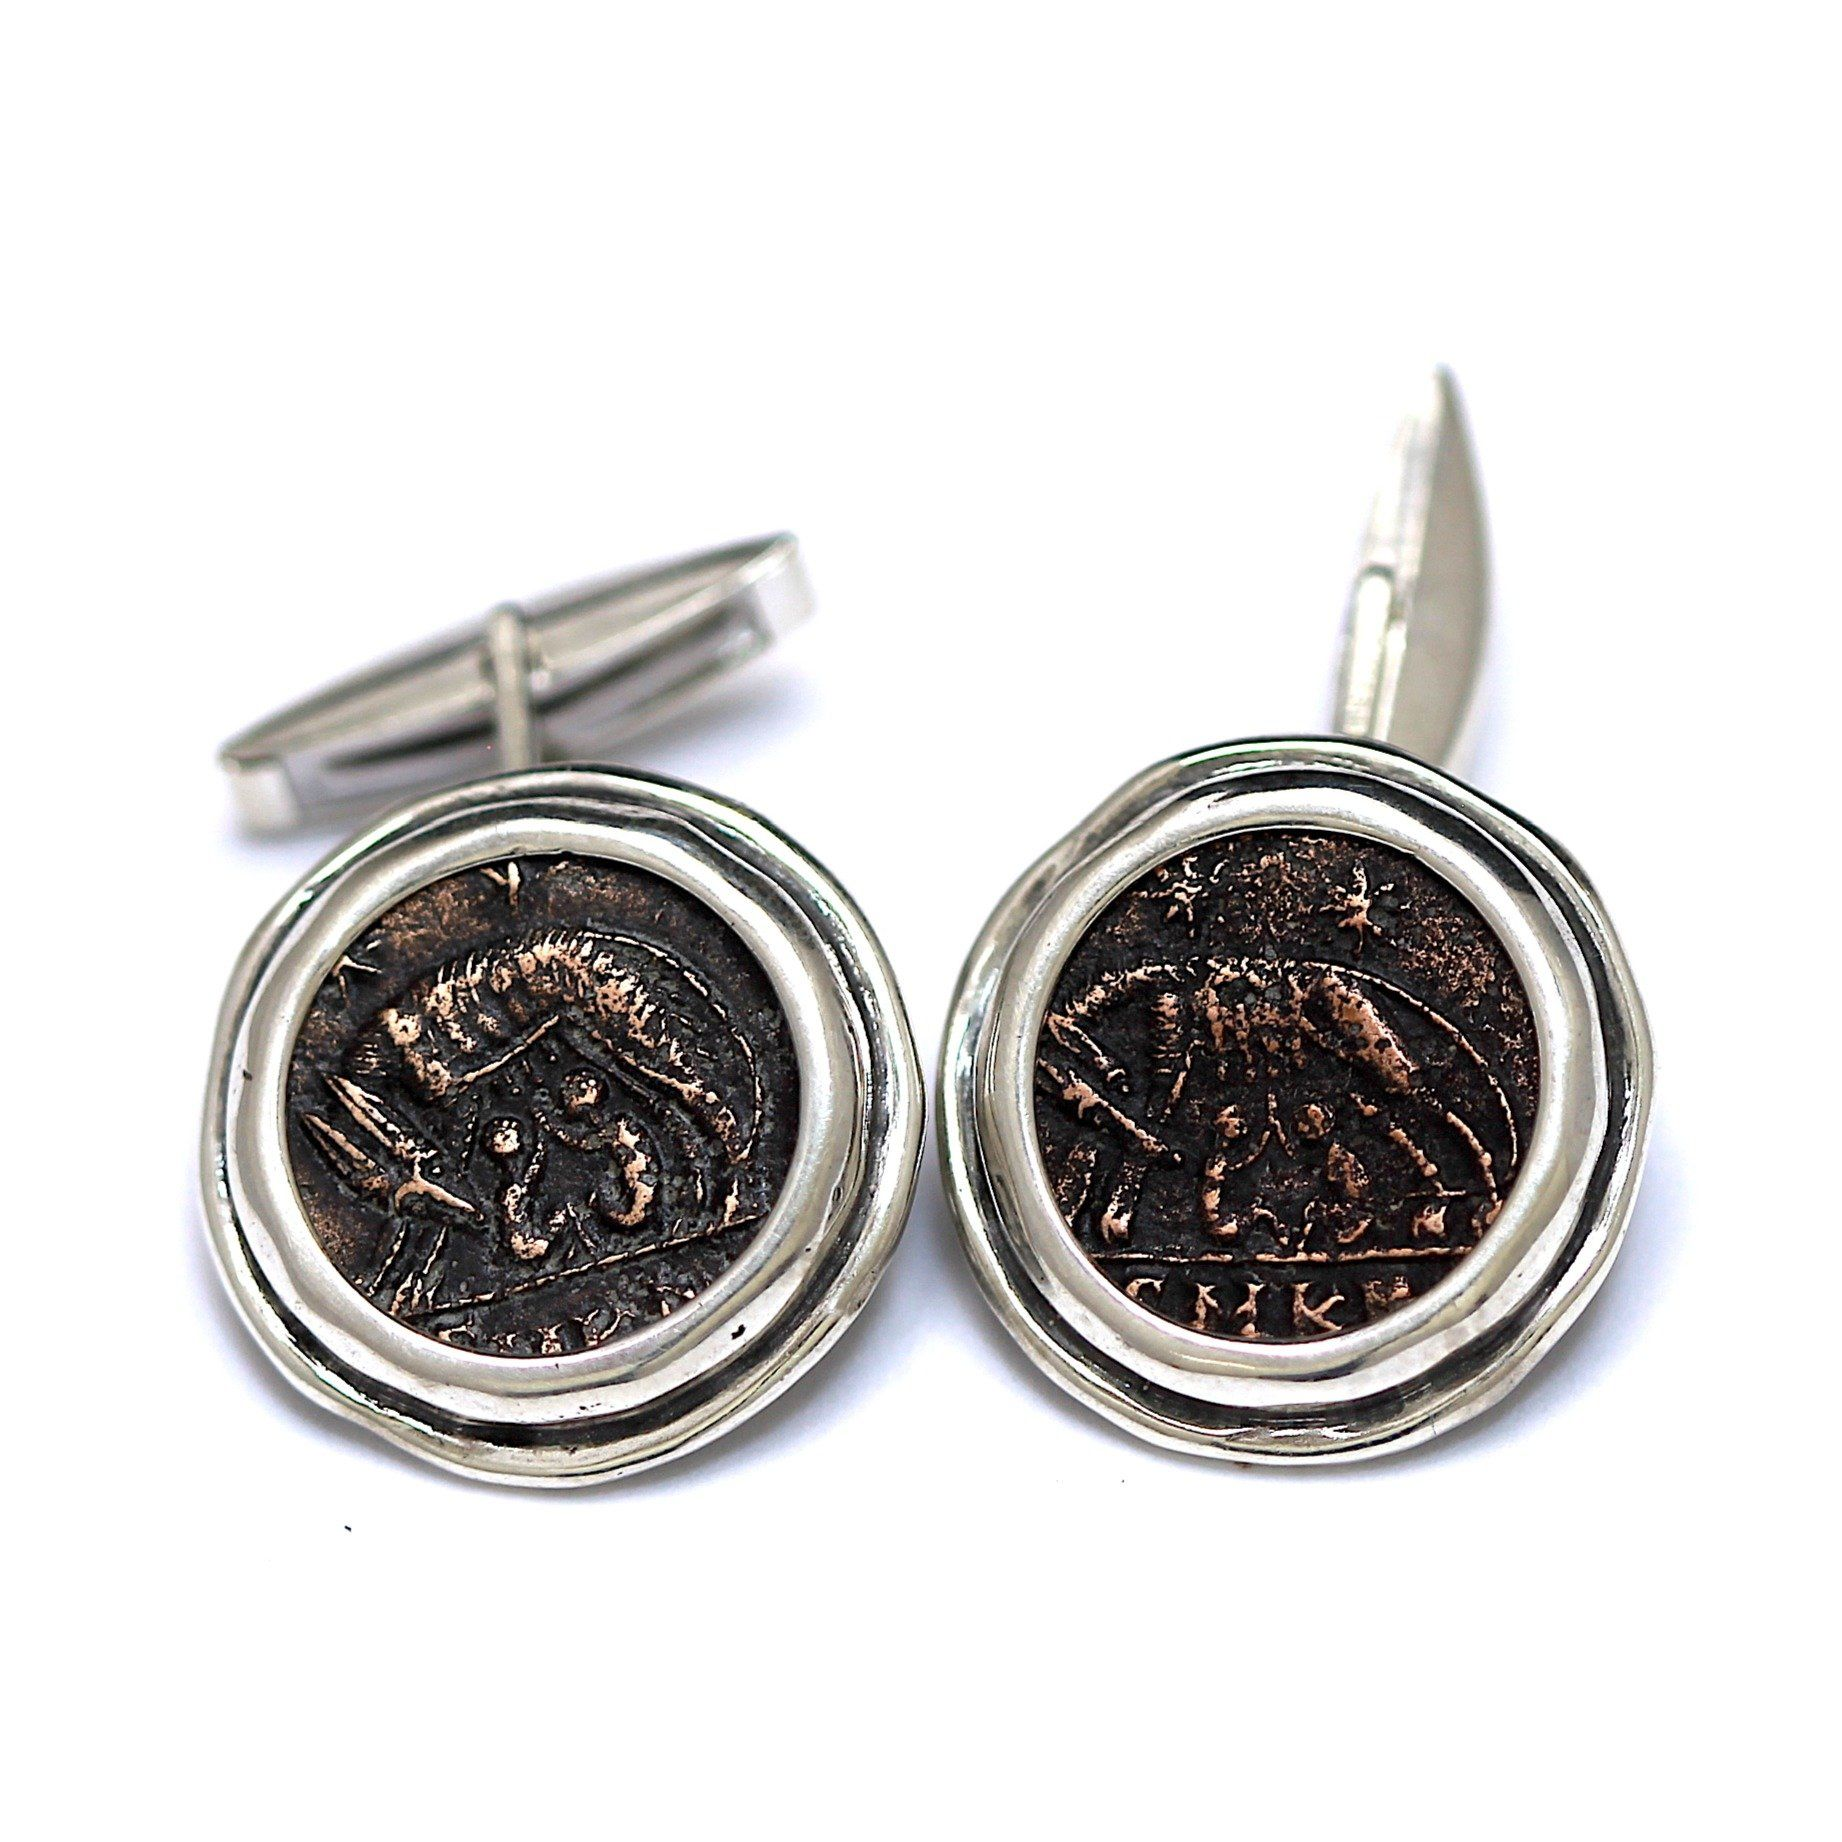 Urba Roma, Romulus and Remus, Roman Coins, Sterling Silver Cufflinks, Genuine Ancient Coins RC5 - Erez Ancient Coin Jewelry, ancient coin jewelry, men jewelry, genuine ancient coins, made in the US